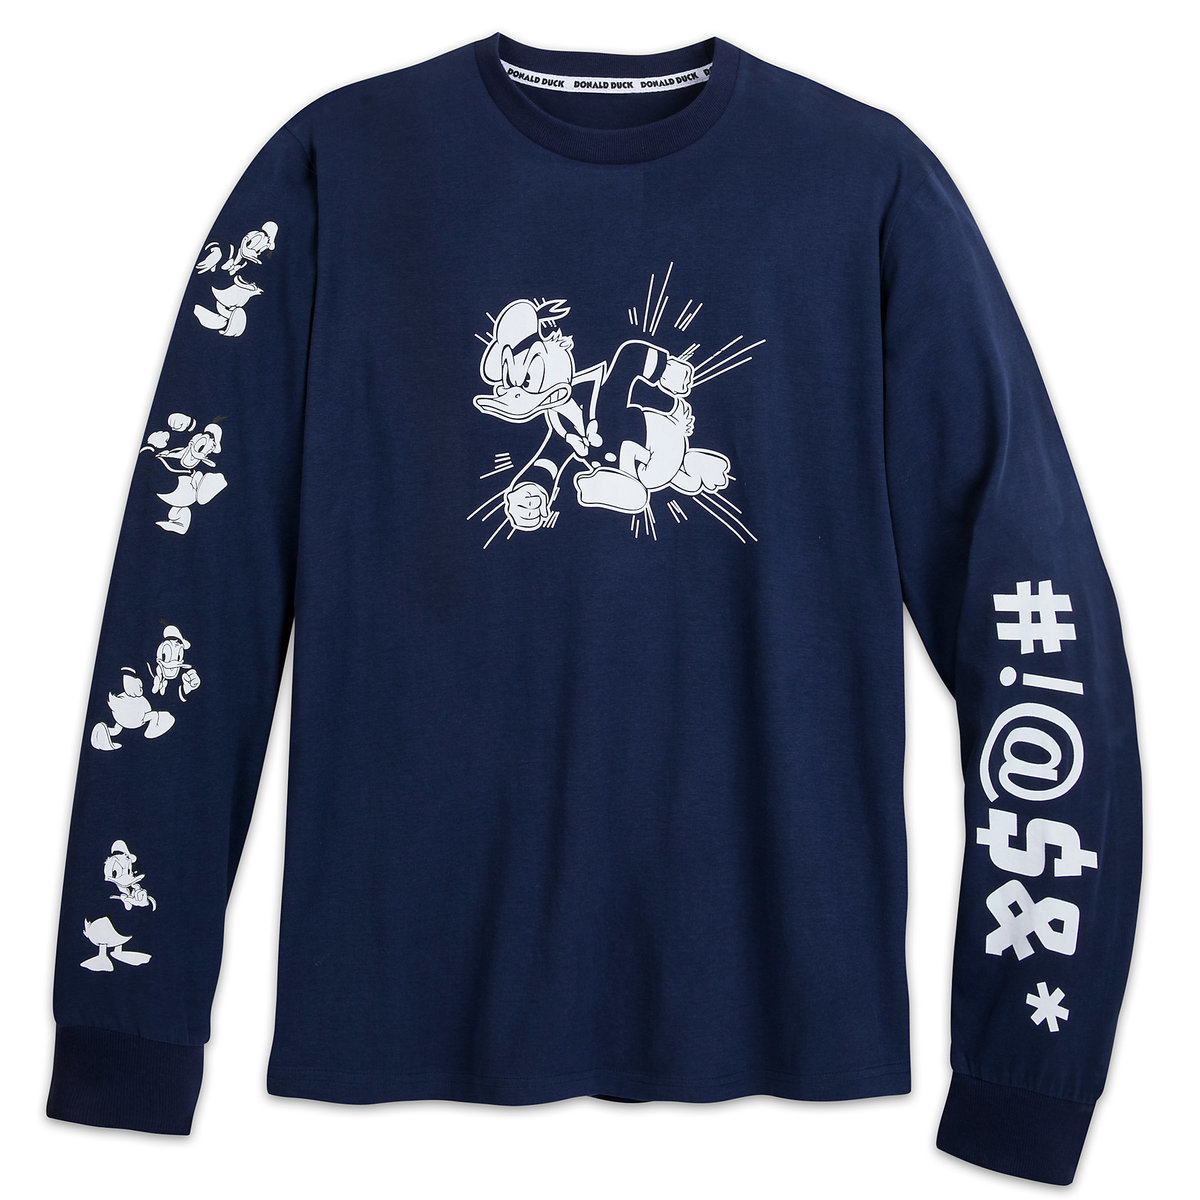 3dca77b33 Product Image of Donald Duck Long Sleeve Shirt for Men # 1